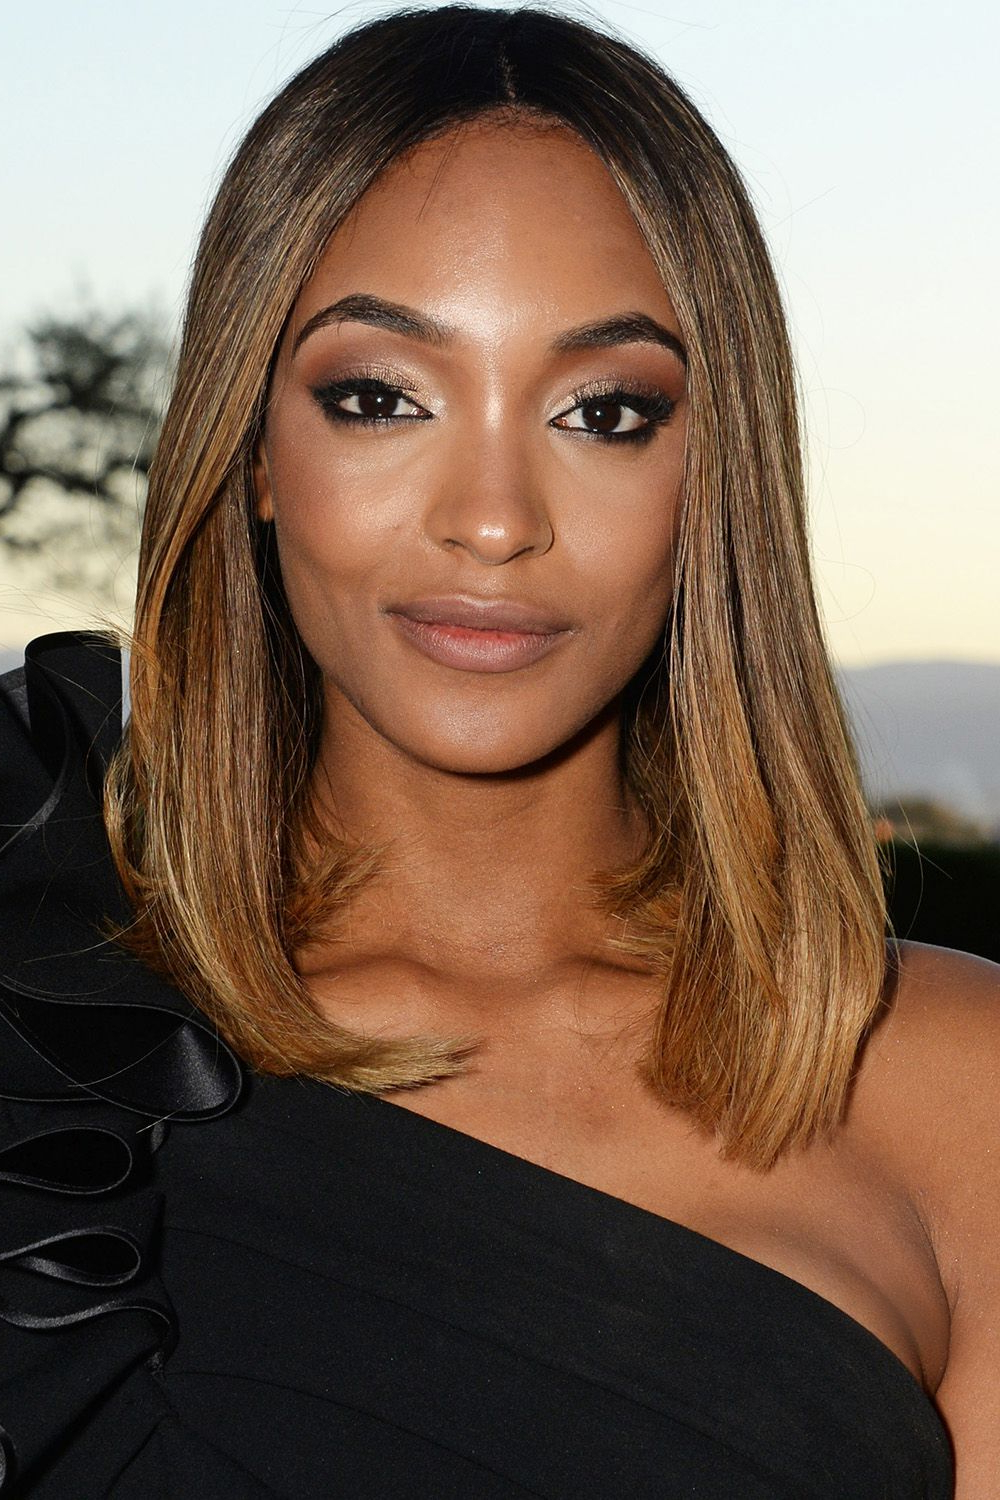 40 Best Medium Hairstyles – Celebrities With Shoulder Length Haircuts Inside Fashionable Medium Haircuts To Look Younger (View 5 of 20)